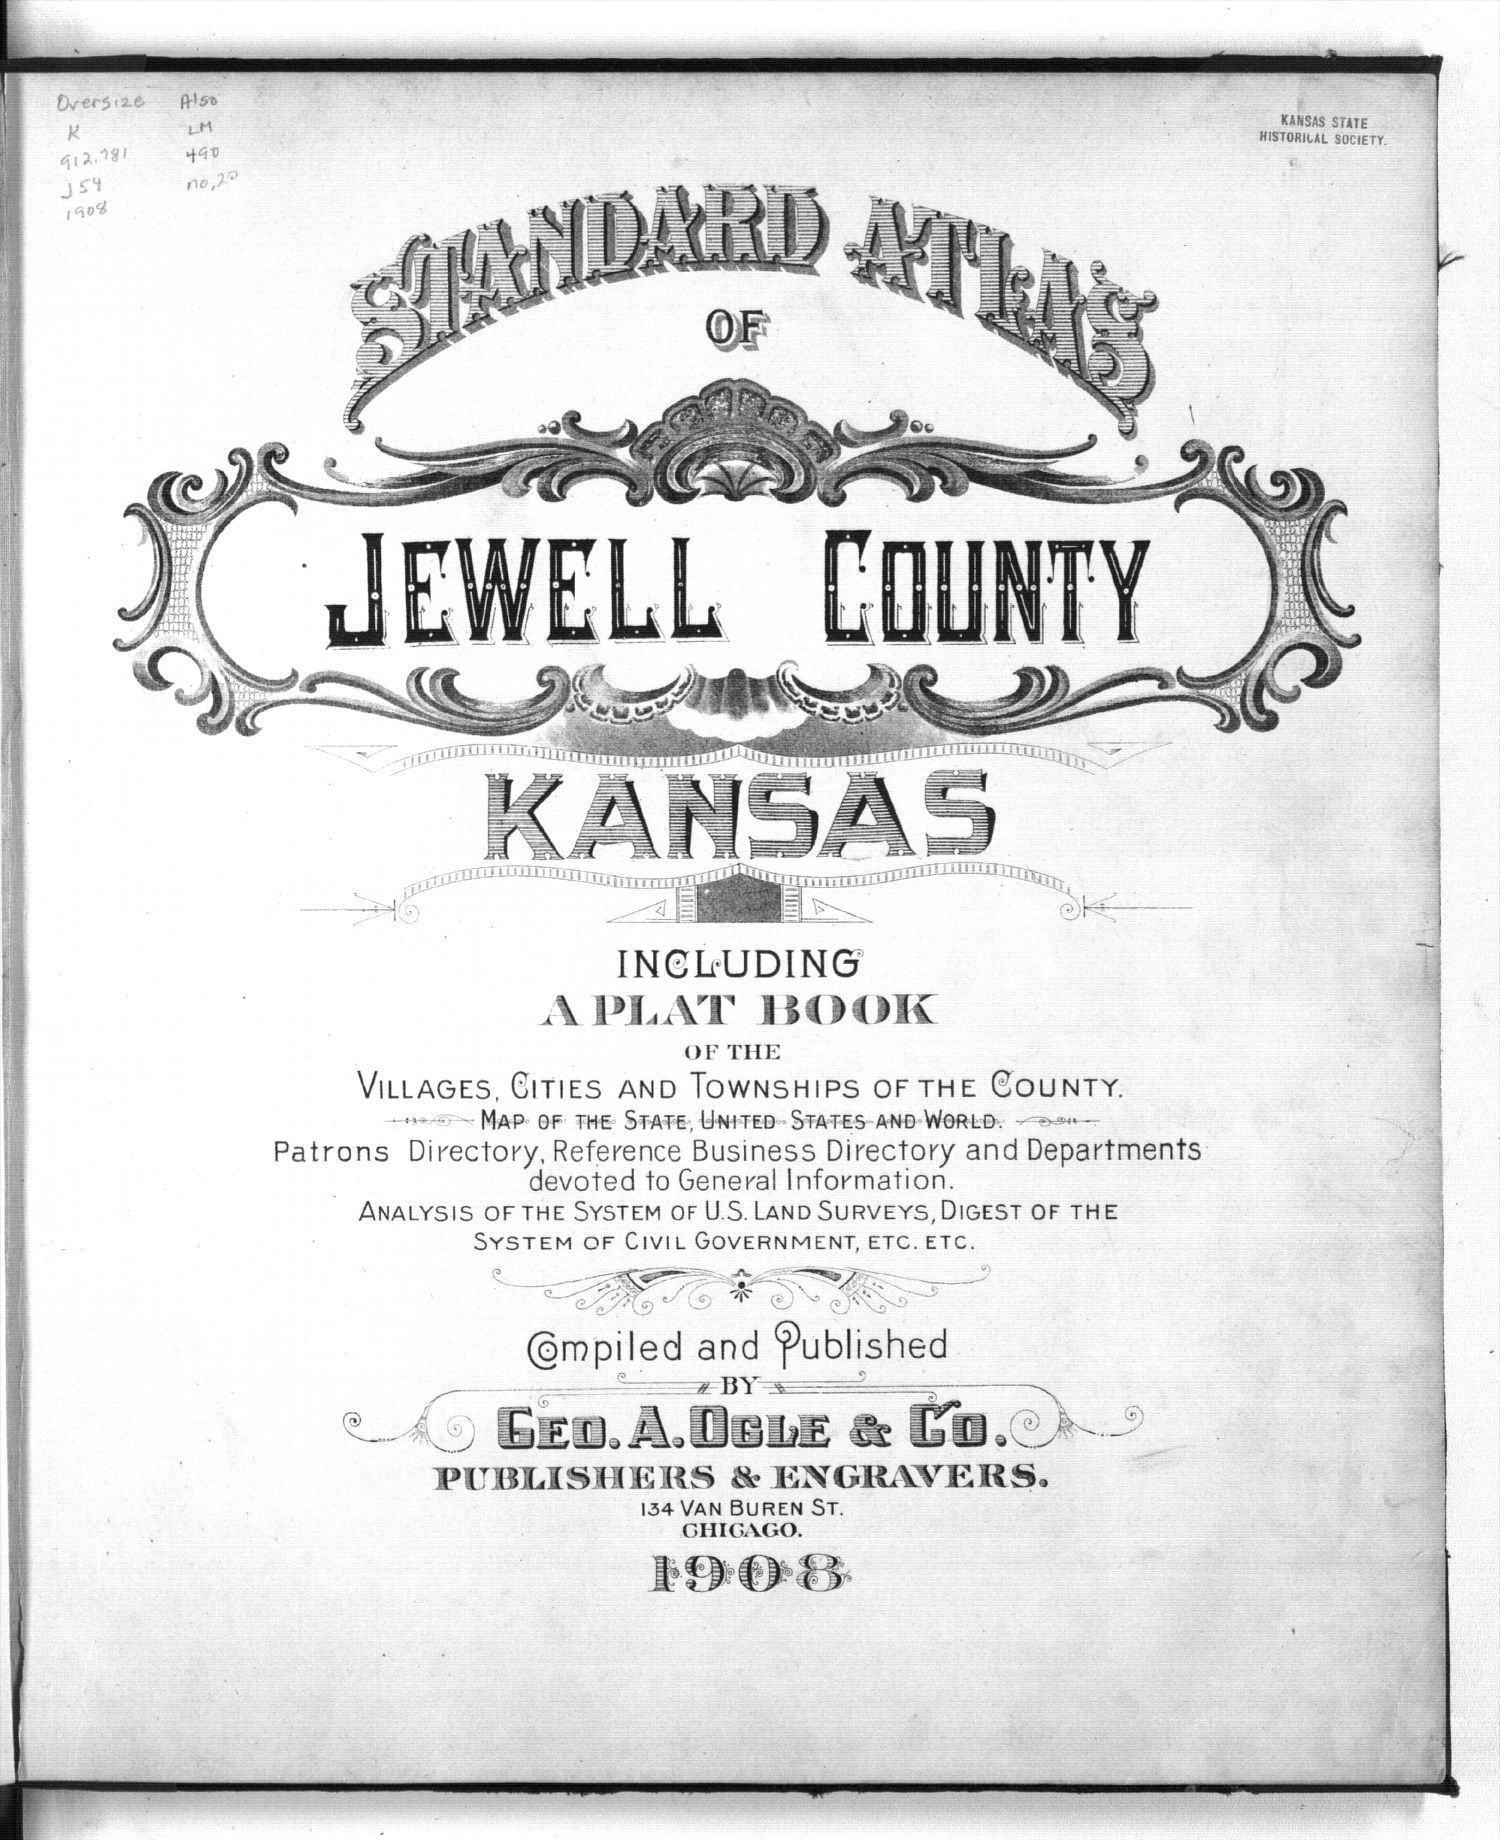 Standard atlas of Jewell County, Kansas - Title Page